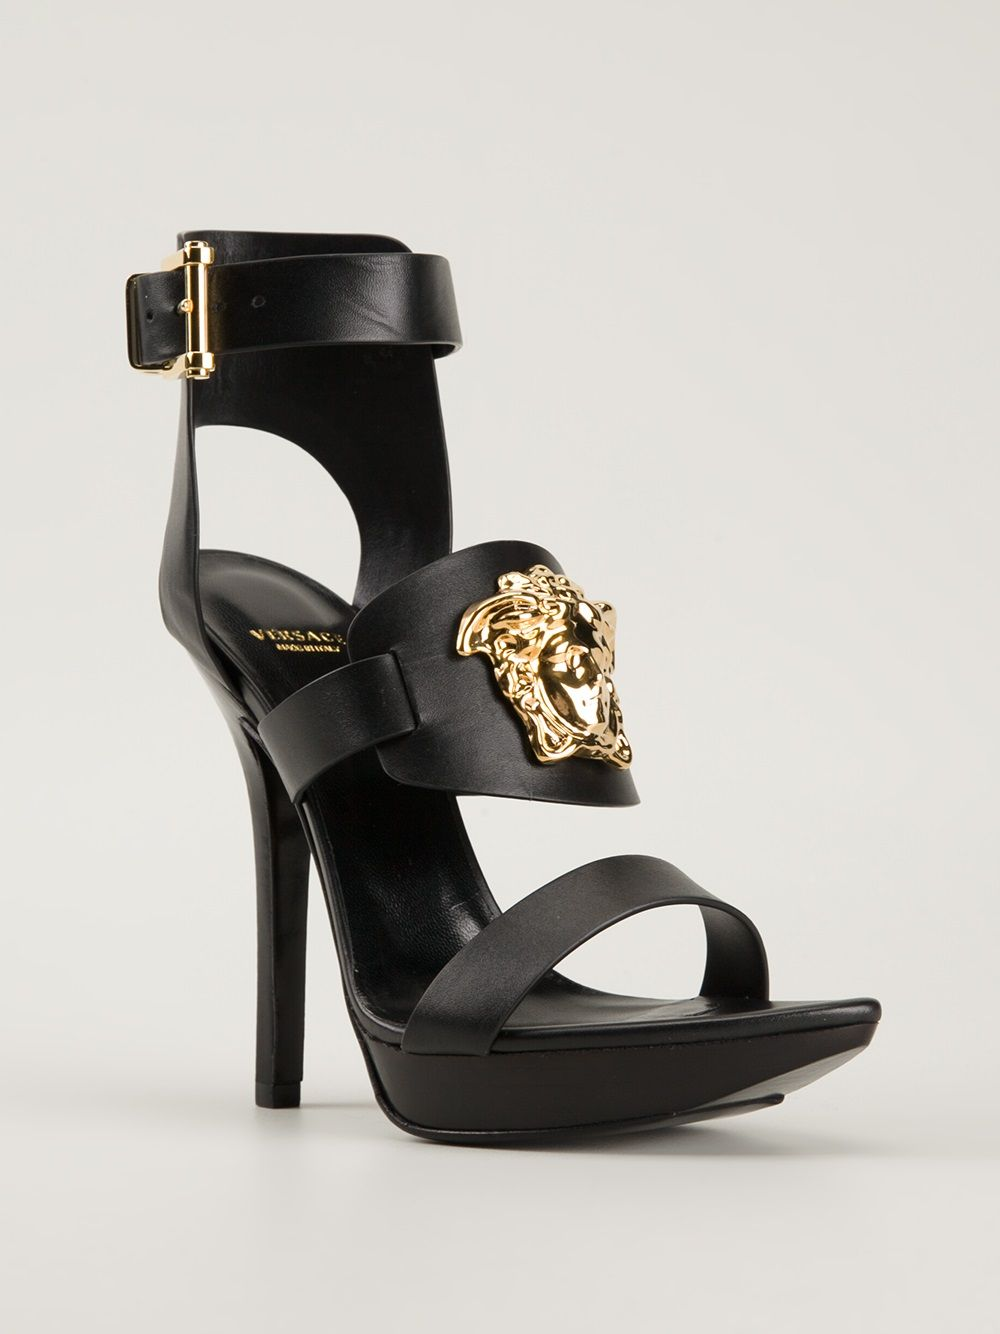 27862d37fd7 Versace Black Medusa Platform Sandals  Shoes  Heels  HighHeels ...